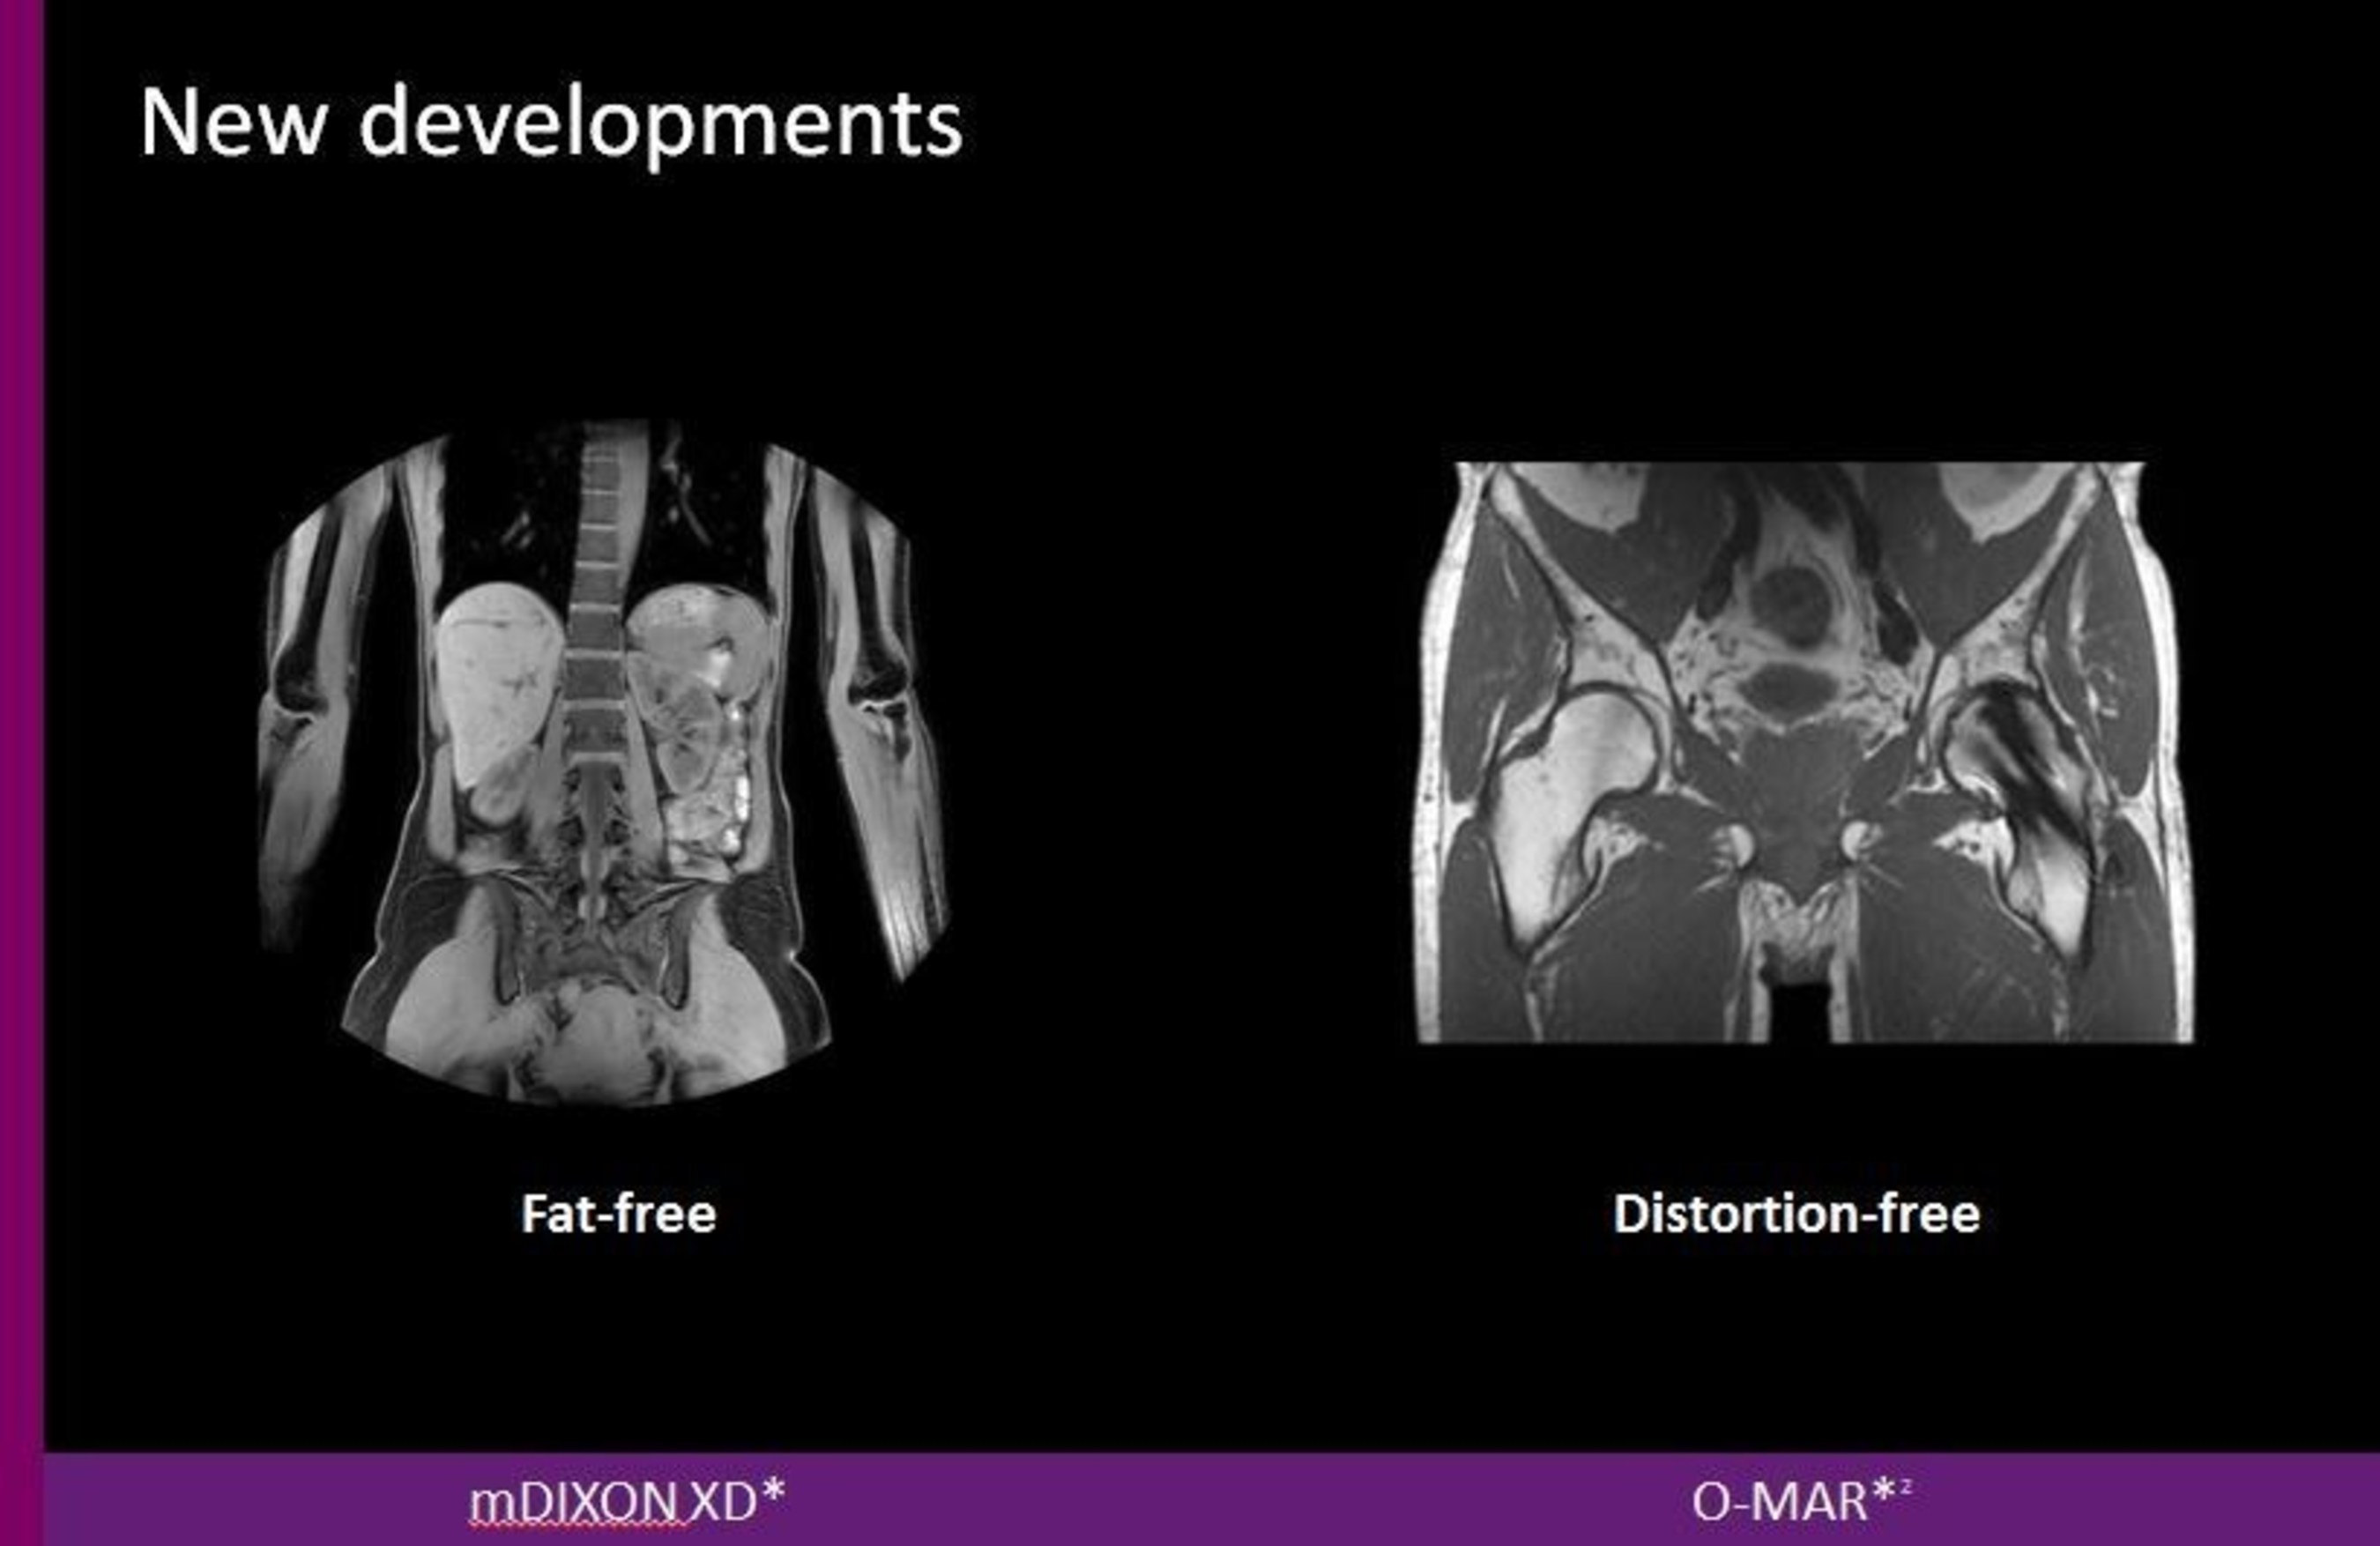 New developments include fat-free and distortion-free imaging.